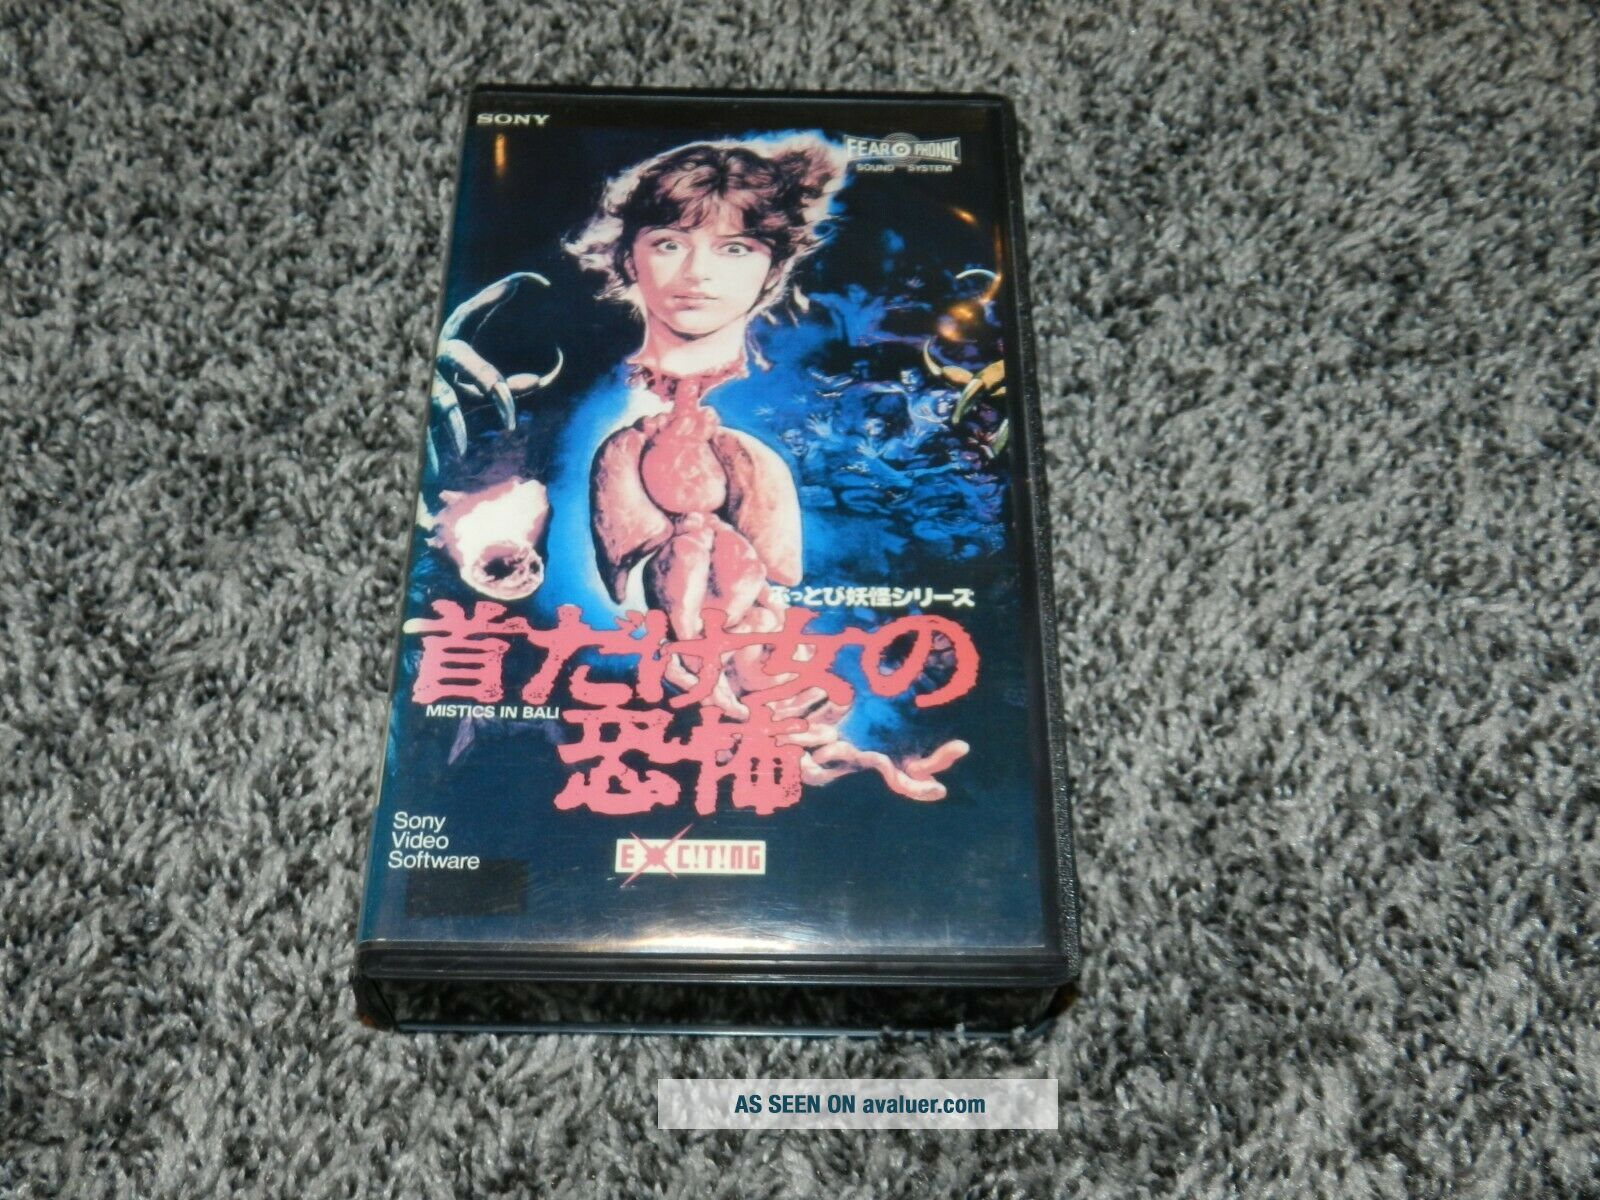 RARE HORROR VHS MISTICS in BALI FEAR O PHONIC 1987 SONY VIDEO MADE in JAPAN